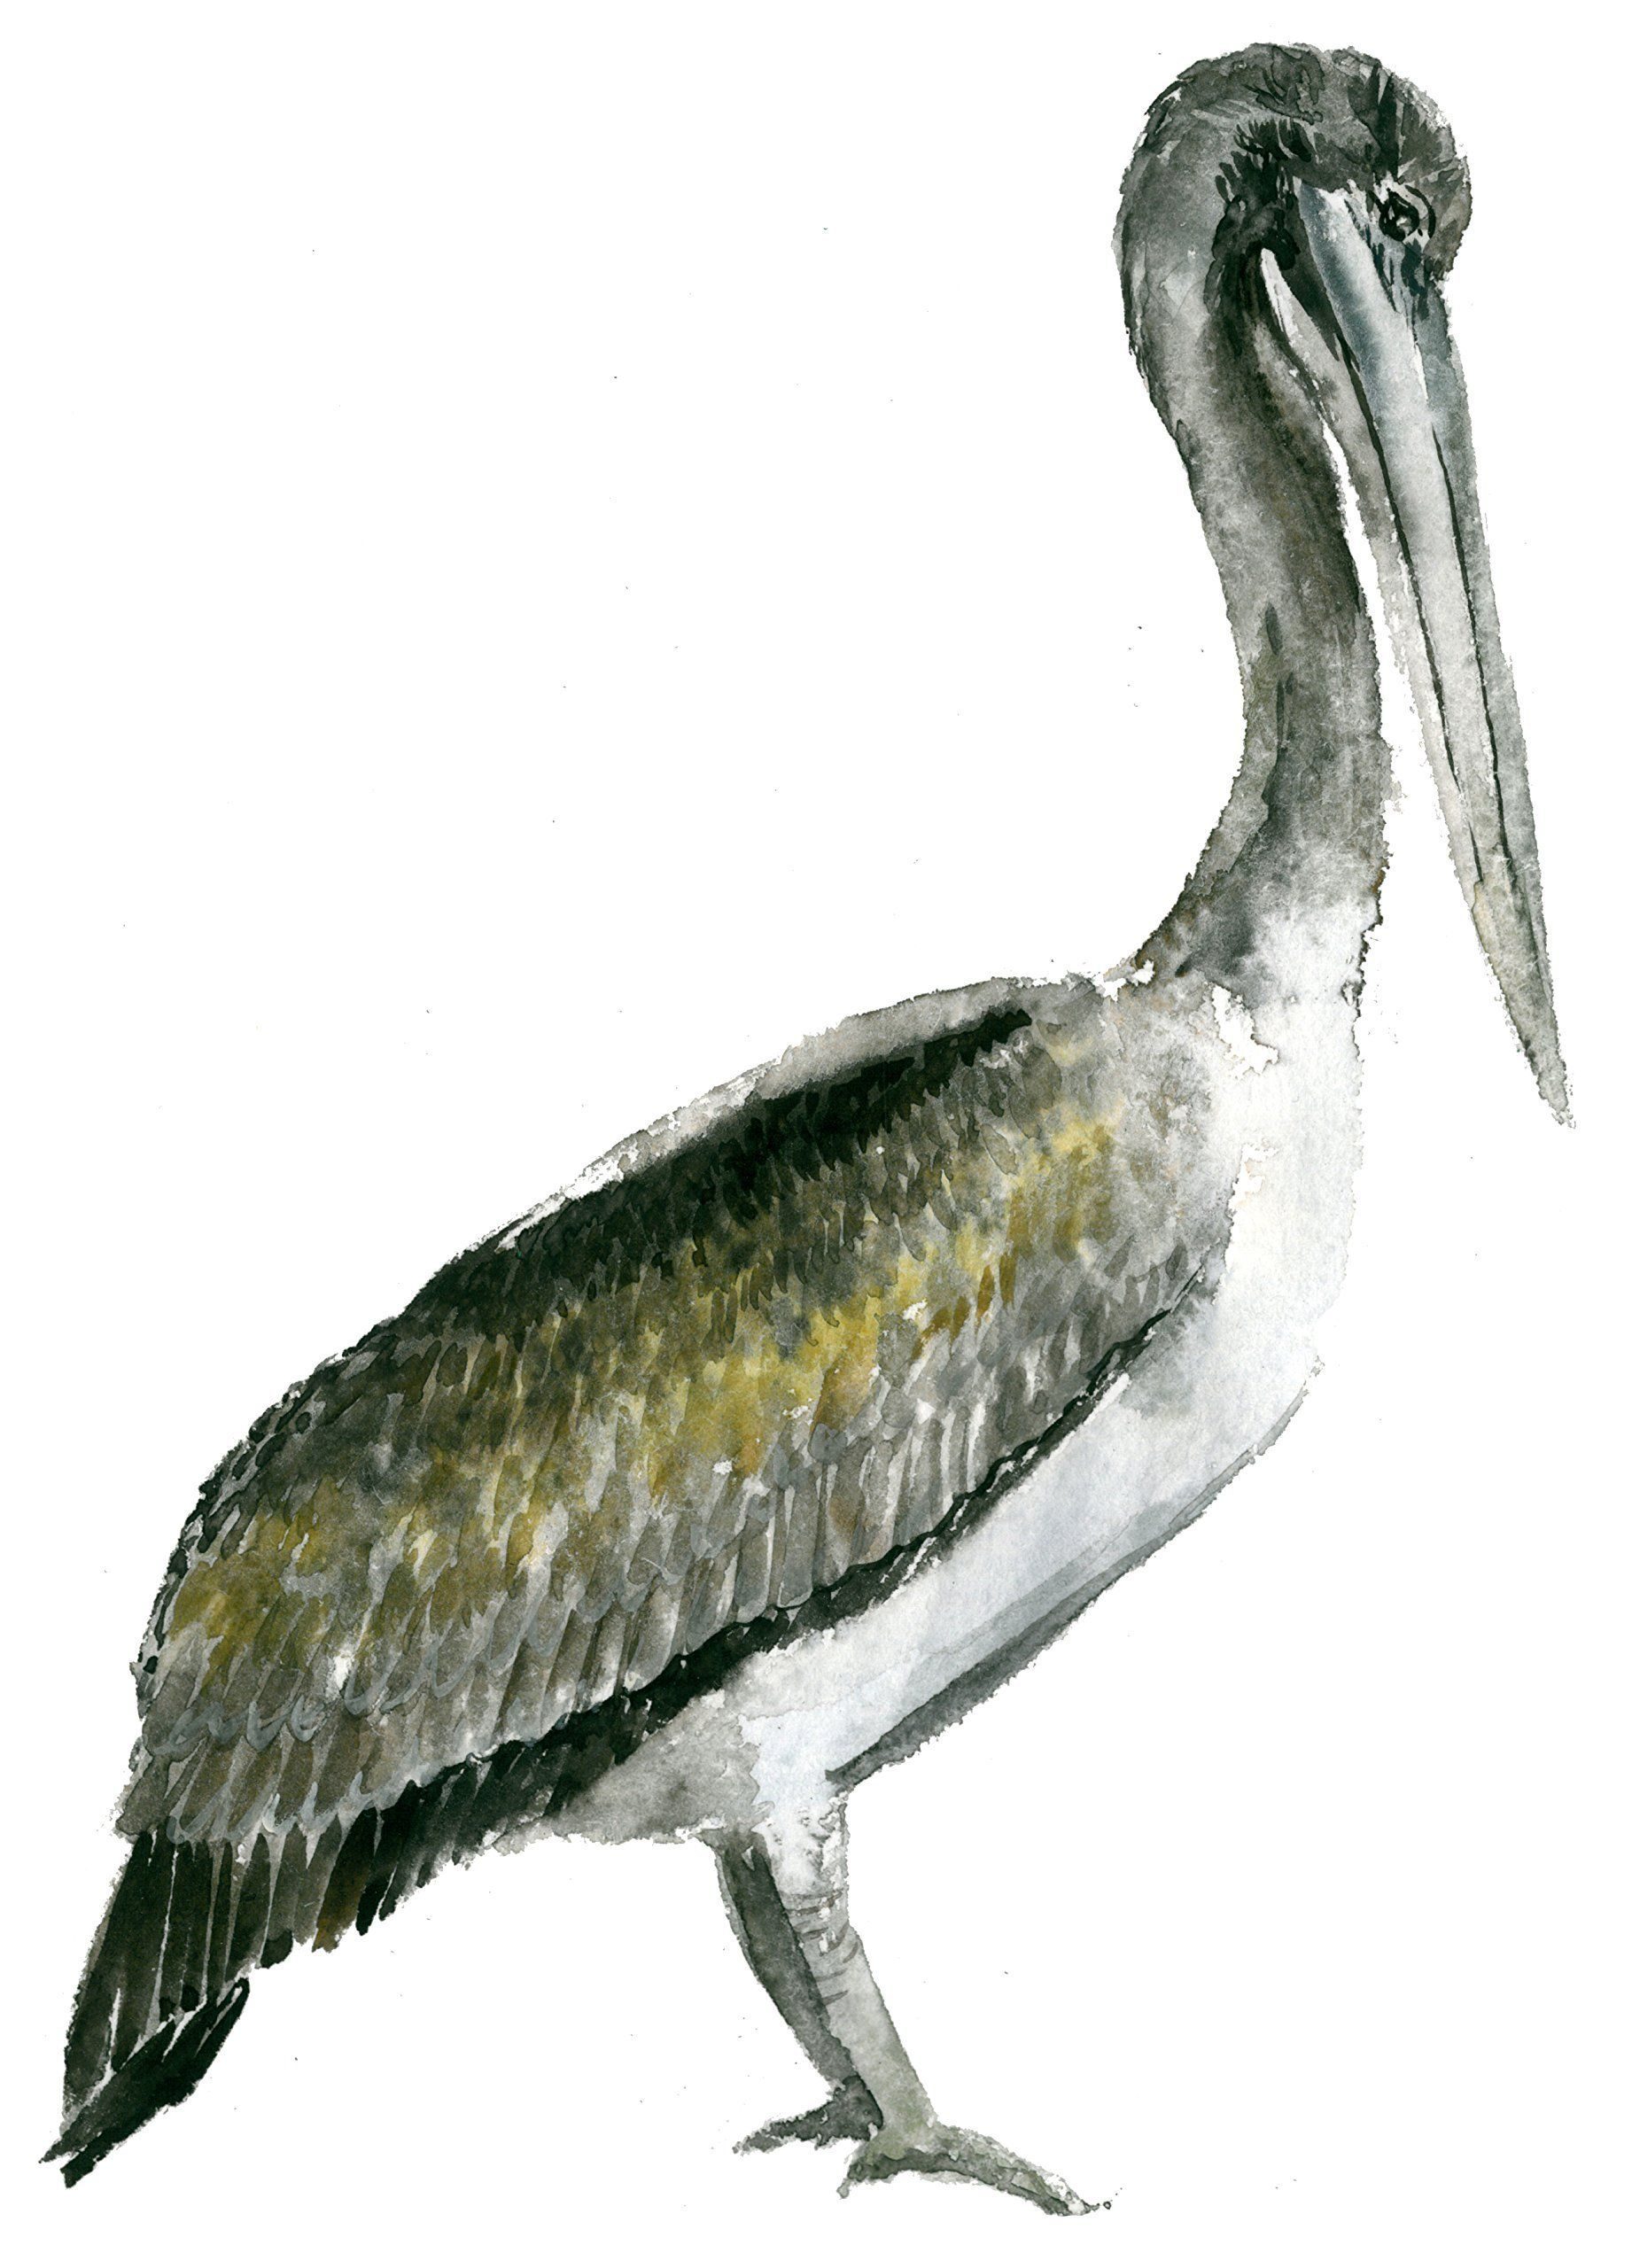 Pelican art print (8x10). #A060 Pelican artwork.Pelican watercolor painting.Pelican painting.Pelican wall art.Wall decor. Hello! This Print is taken from my original watercolor! Printed on high-quality white paper! Print measures: 8x10 inches. Frame is Not Included.